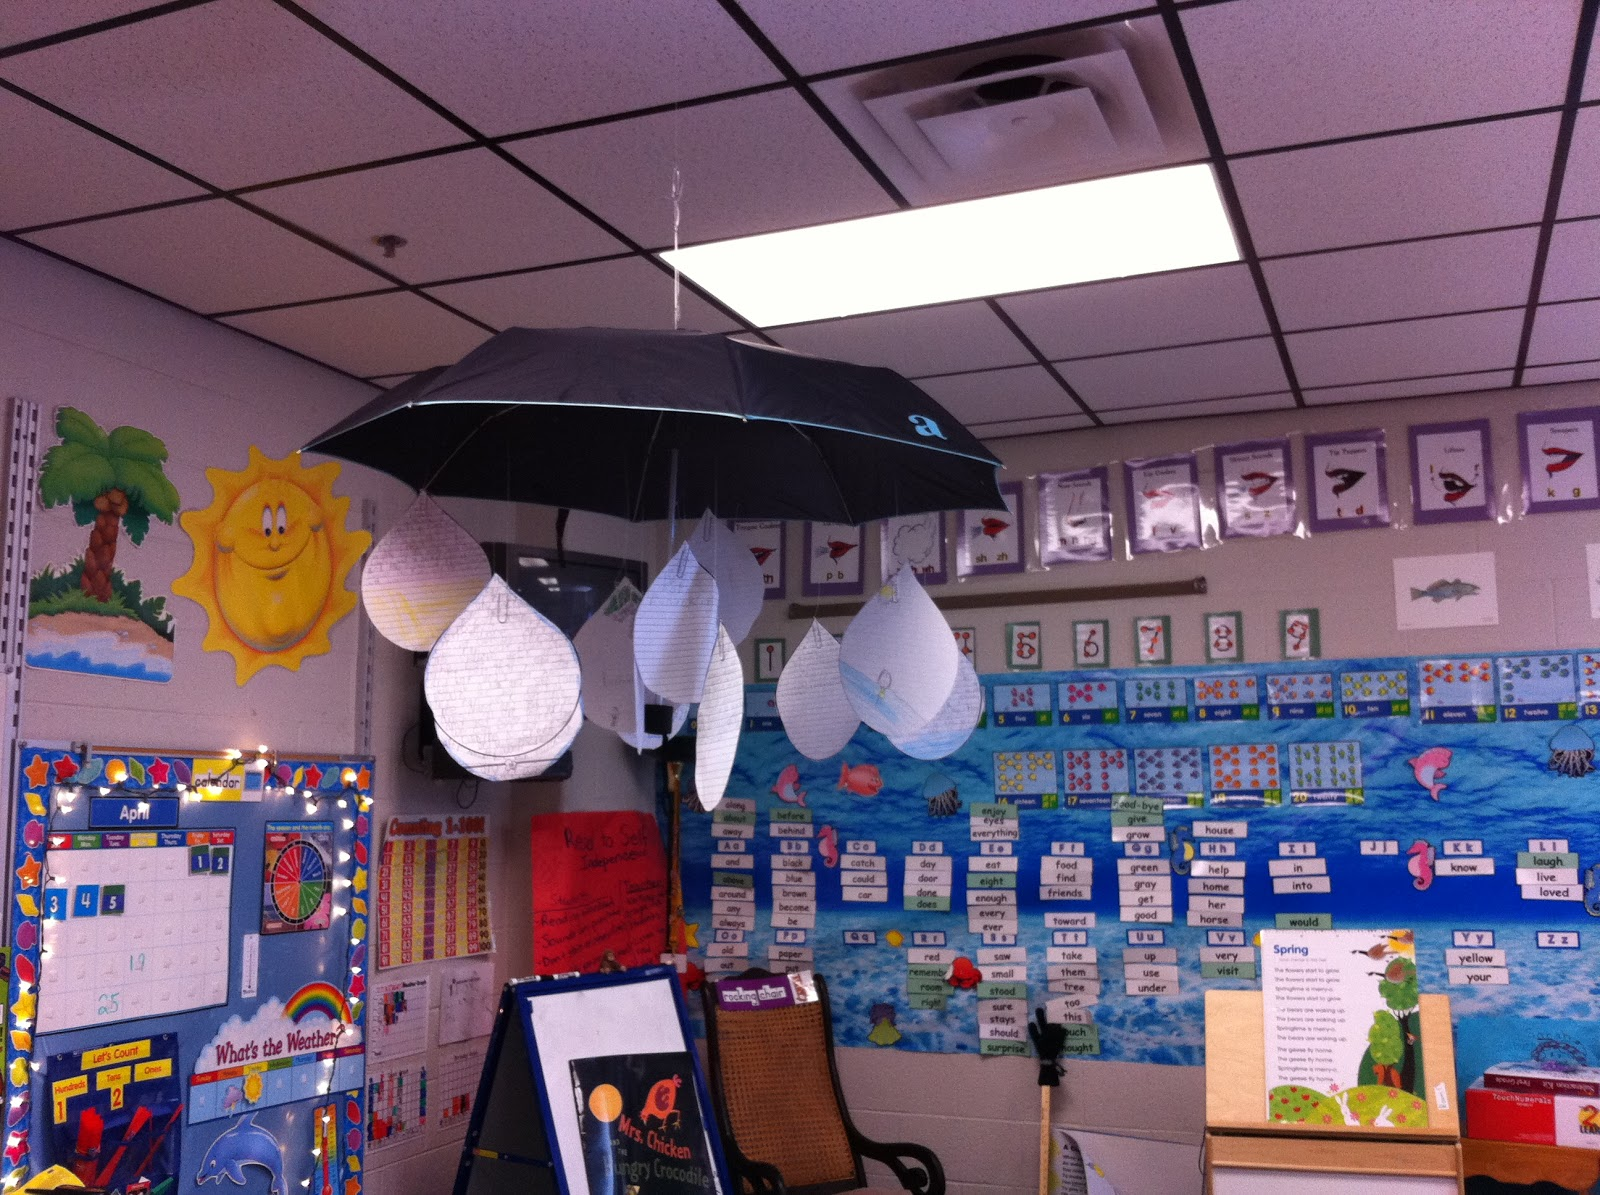 Summer Classroom Decorations Ideas : Teaching happily ever after april classroom pics weather activities